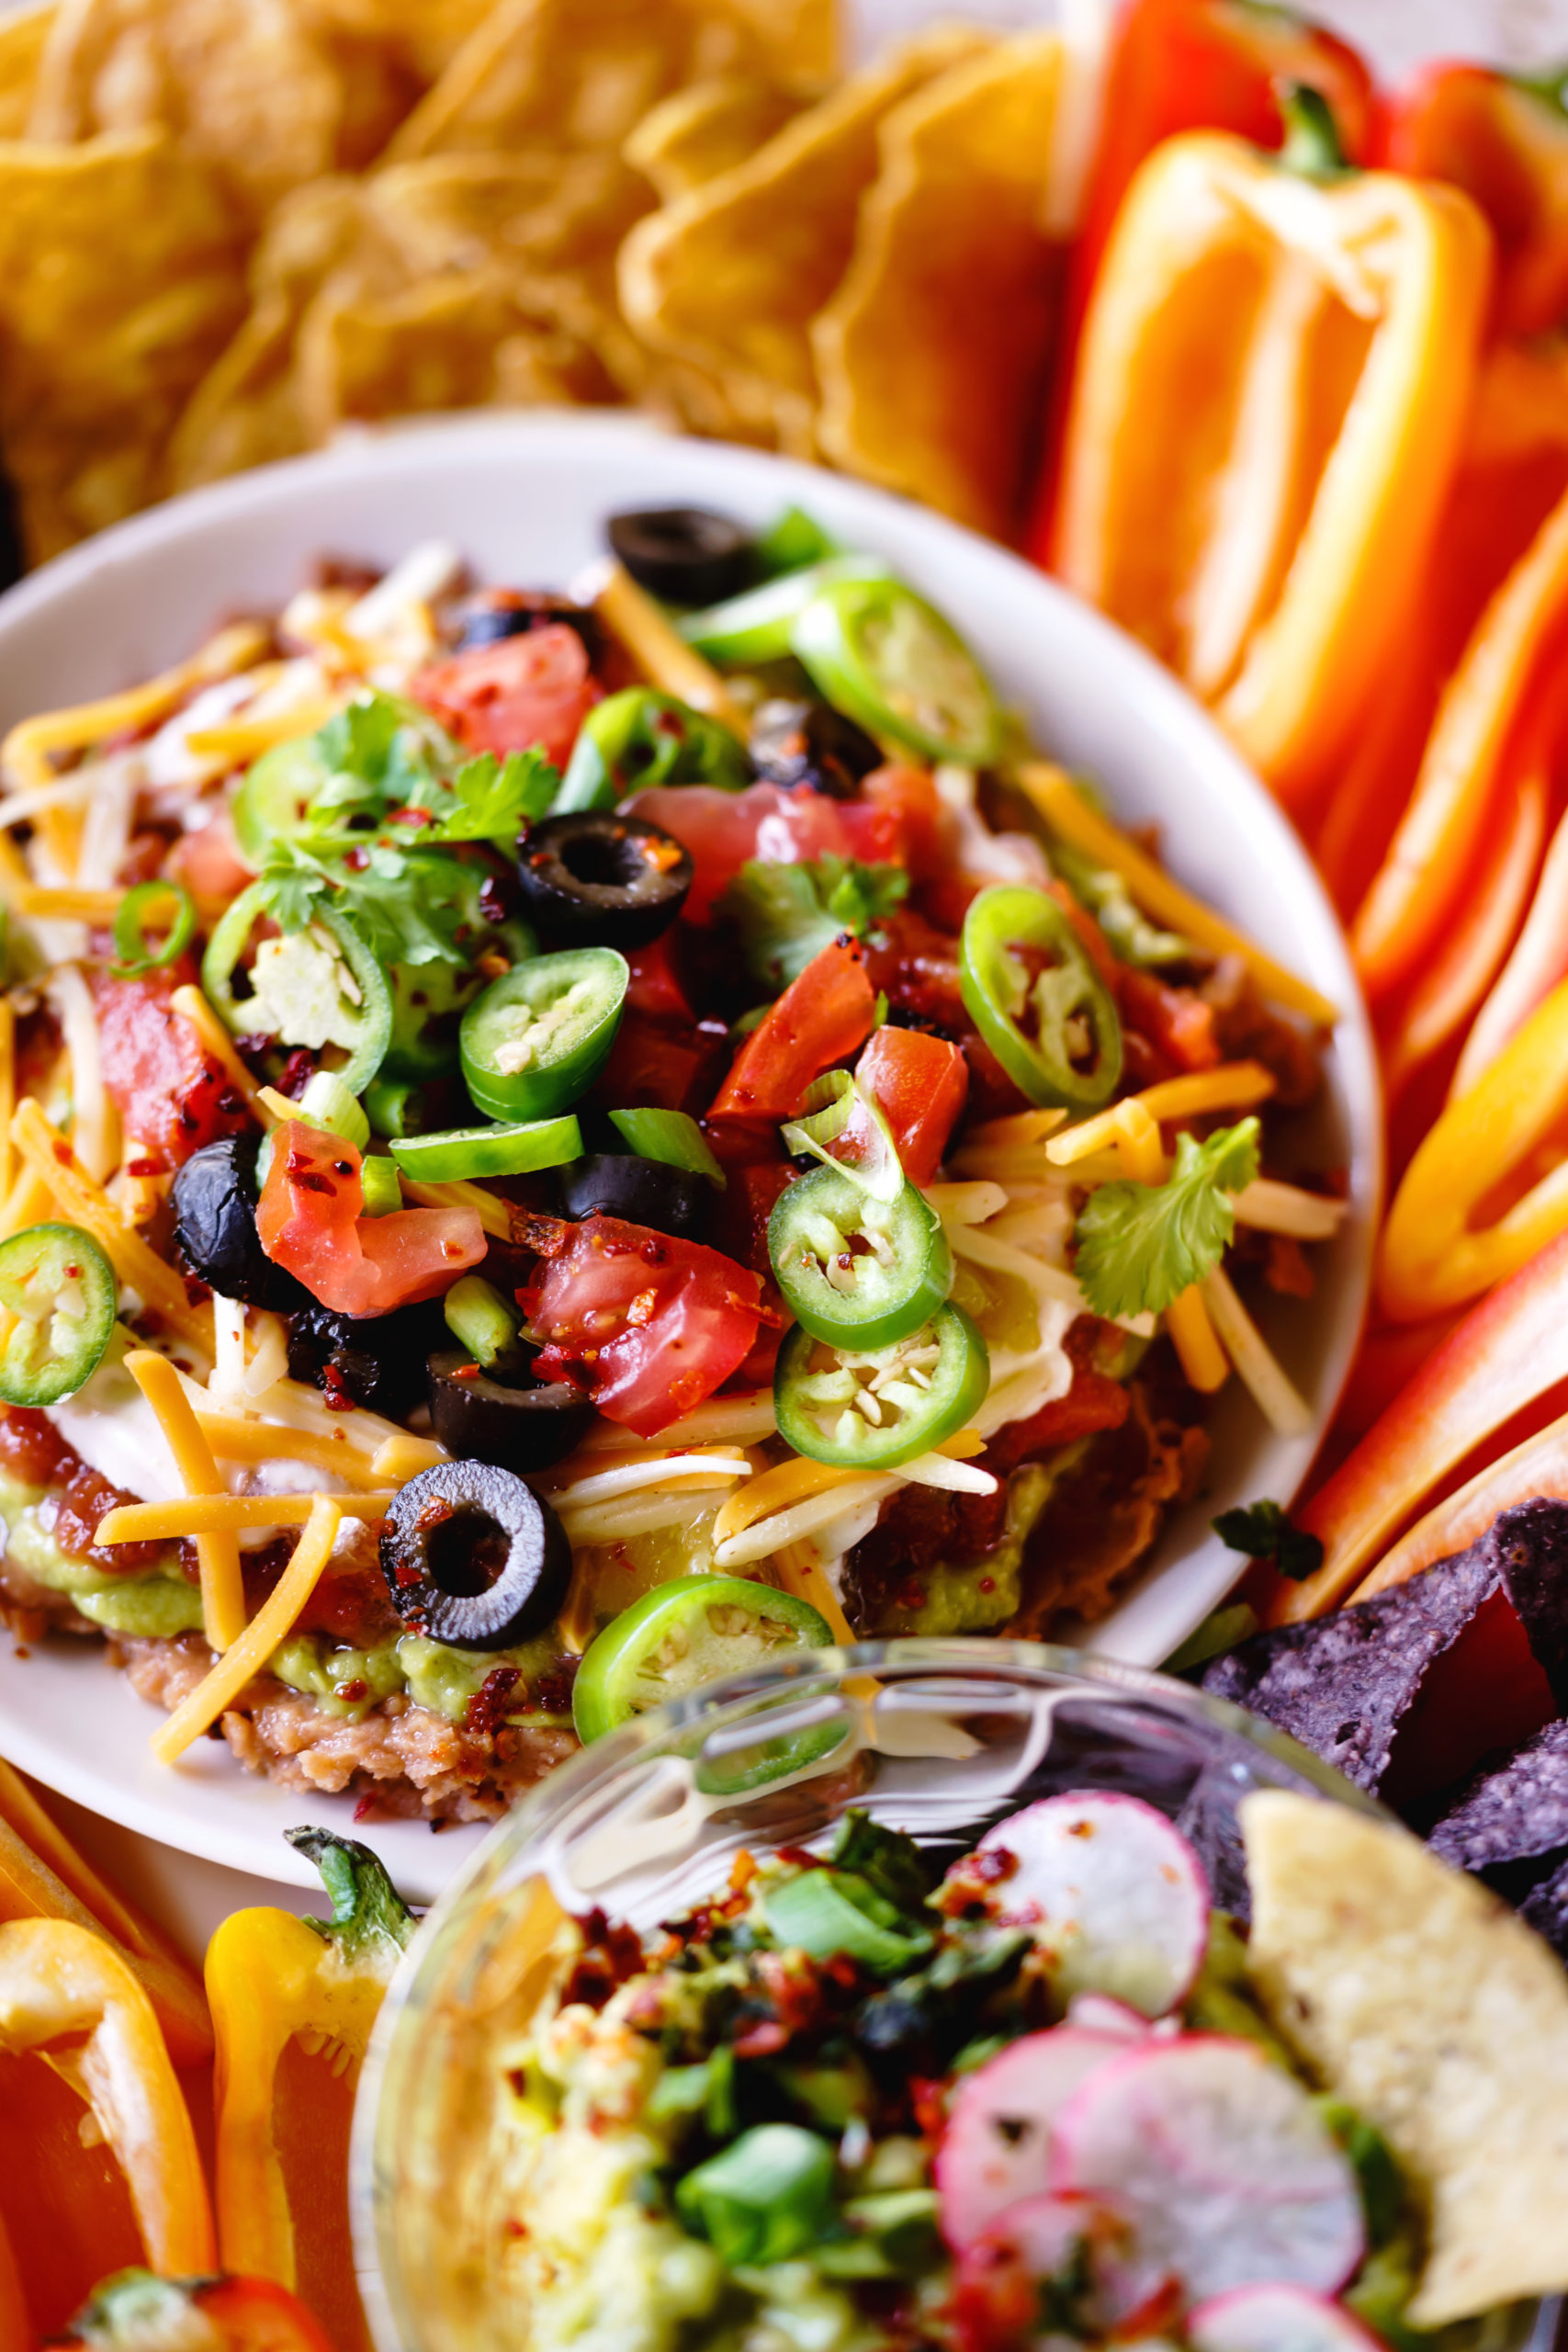 Seven-Layer Dip served with chips and crispy veggies.